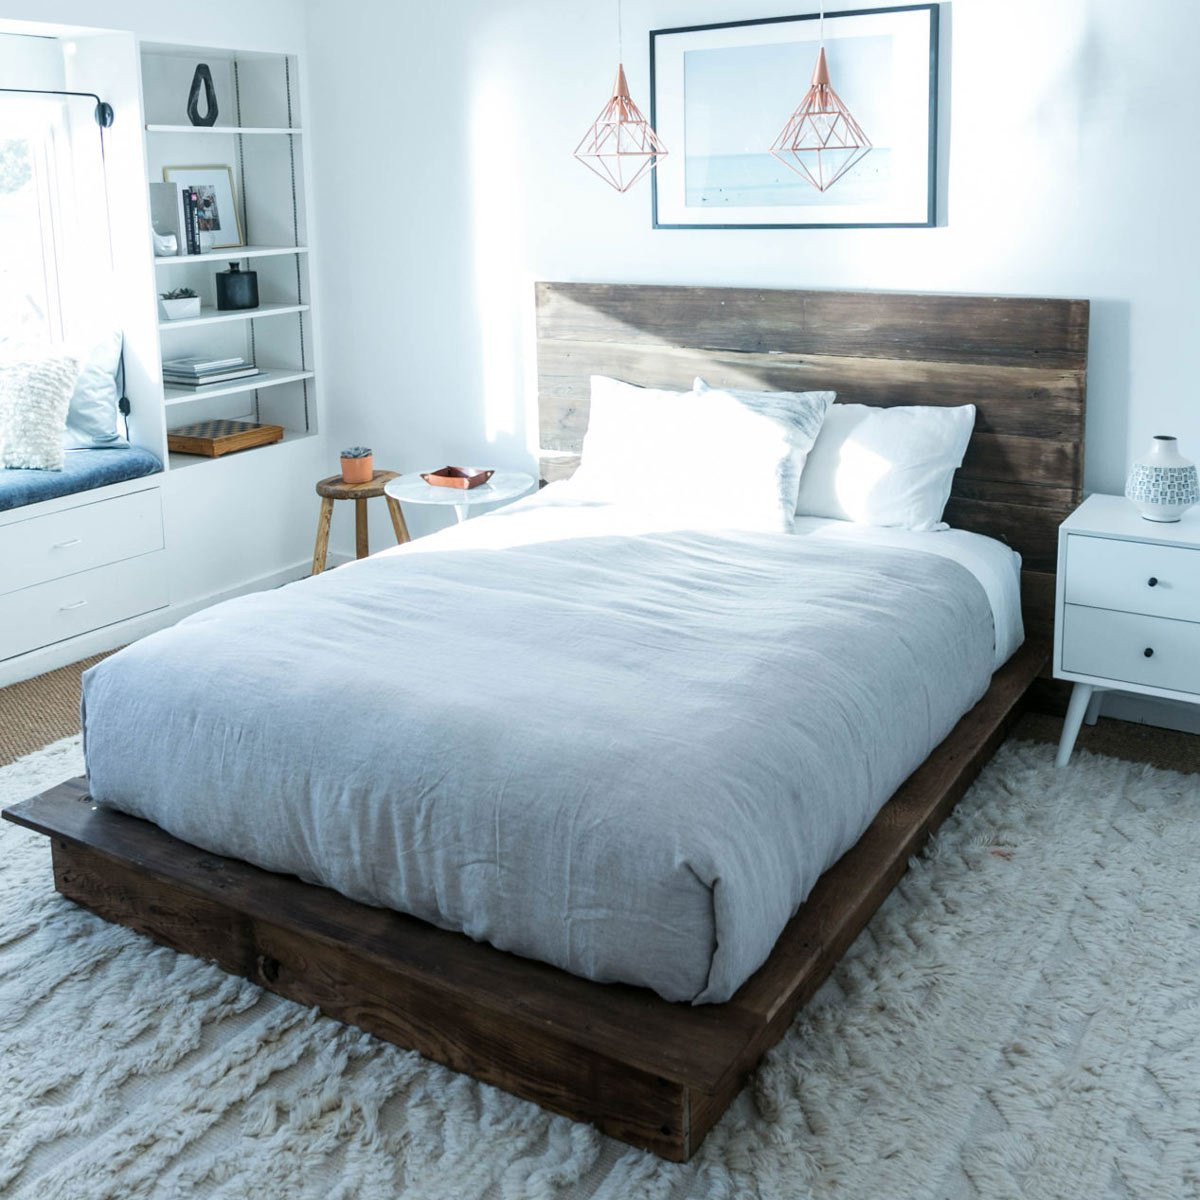 Best ideas about DIY Bed Ideas . Save or Pin 10 Awesome DIY Platform Bed Designs — The Family Handyman Now.